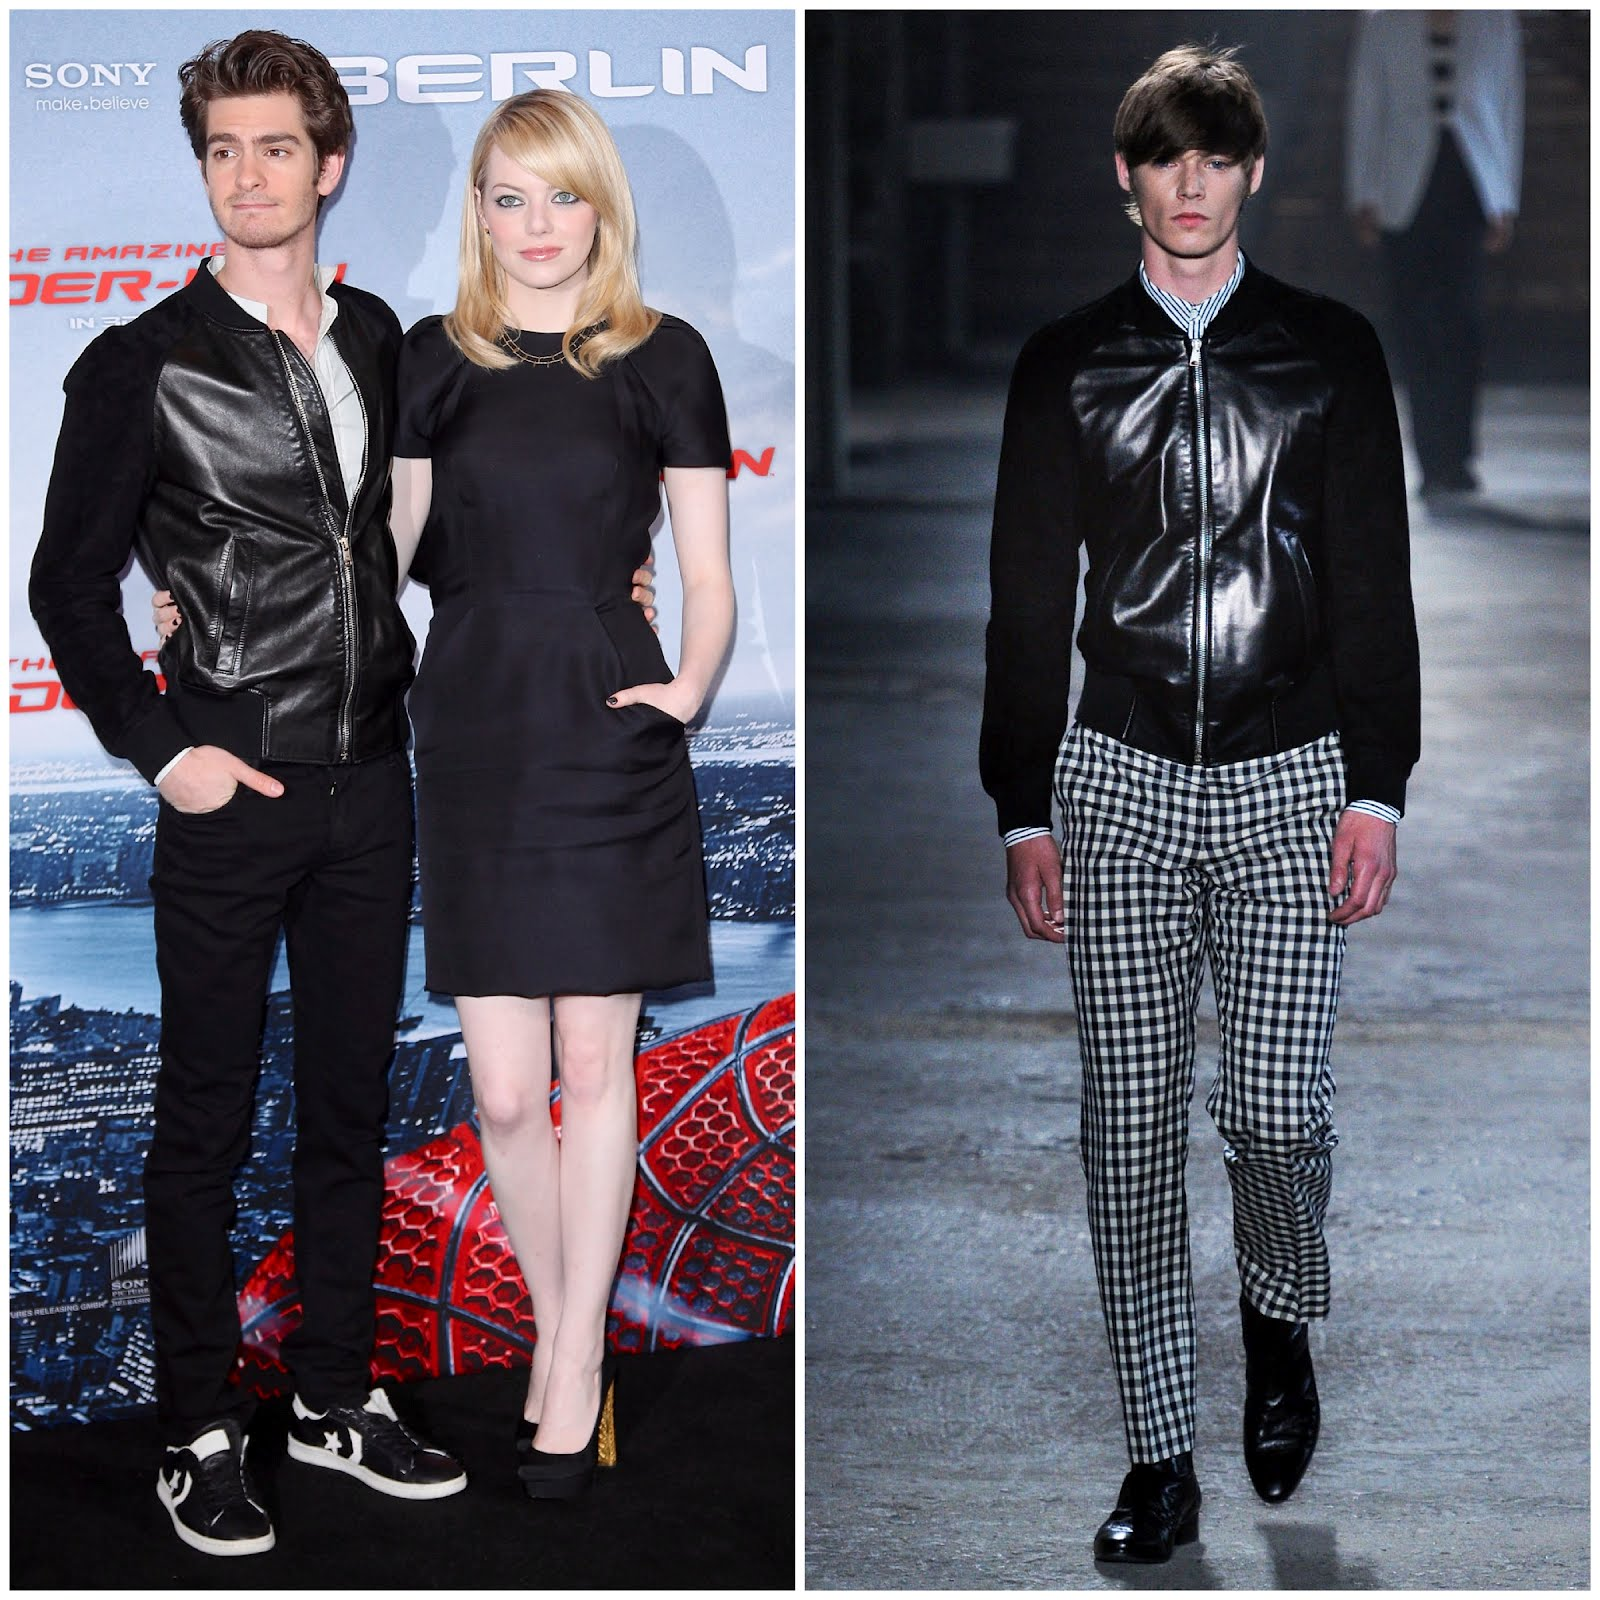 00o00 menswear london fashion style blog andrew garfield spiderman berlin alexander mcqueen leather jacket spring summer 2012 SS2012